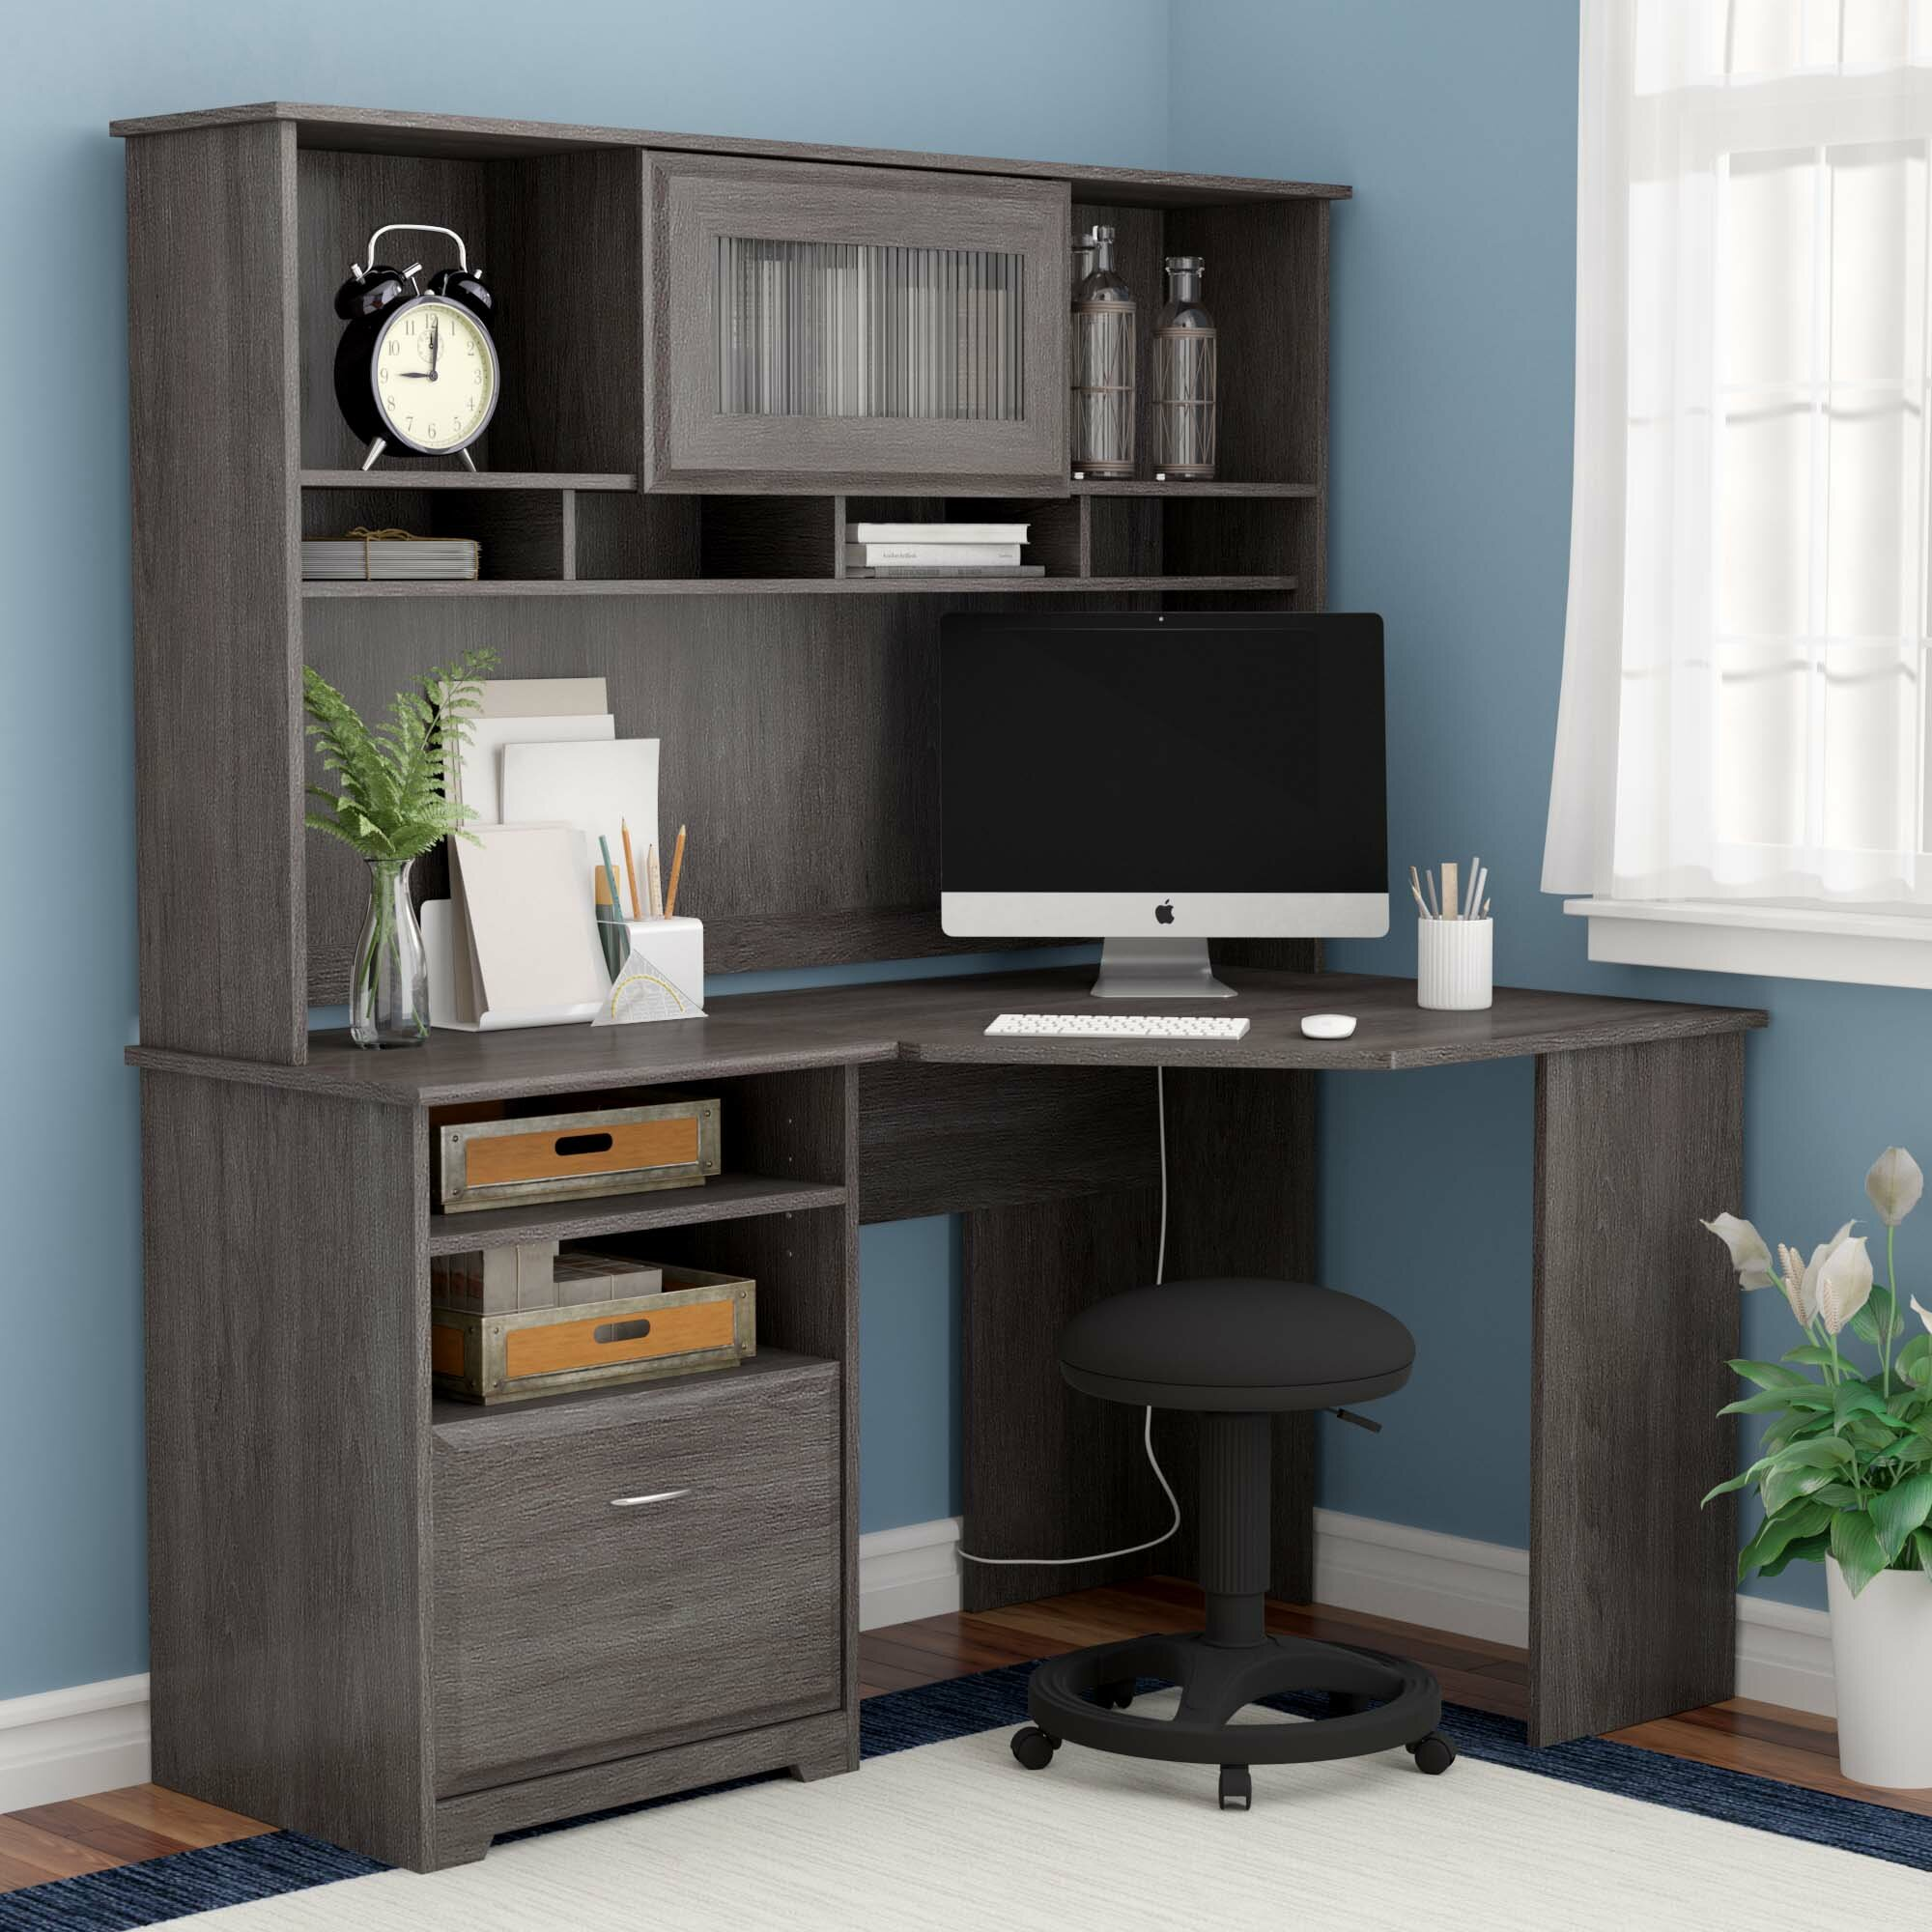 computer gaines postman with s desk industrial joanna magnolia and products by drawers number home hutch item